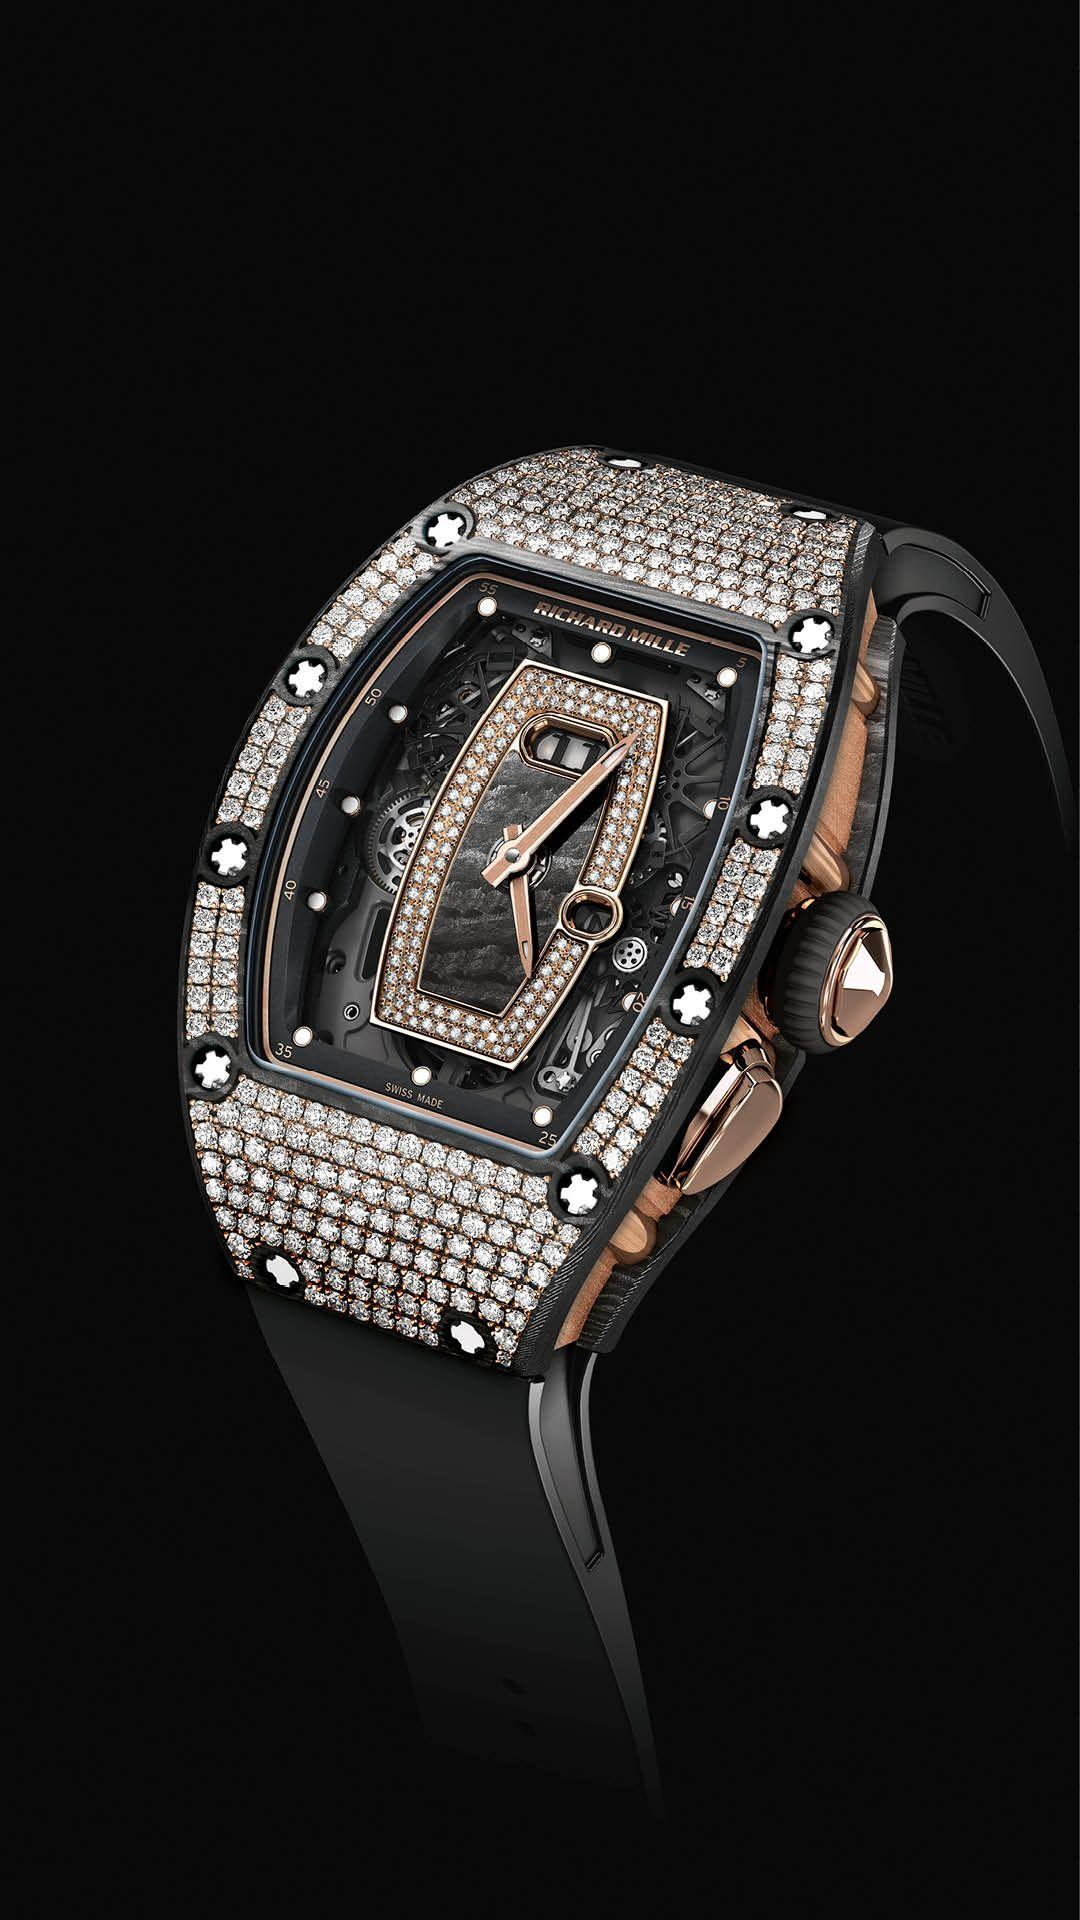 Richard Mille 037 NTPT Carbon and Diamond Watch